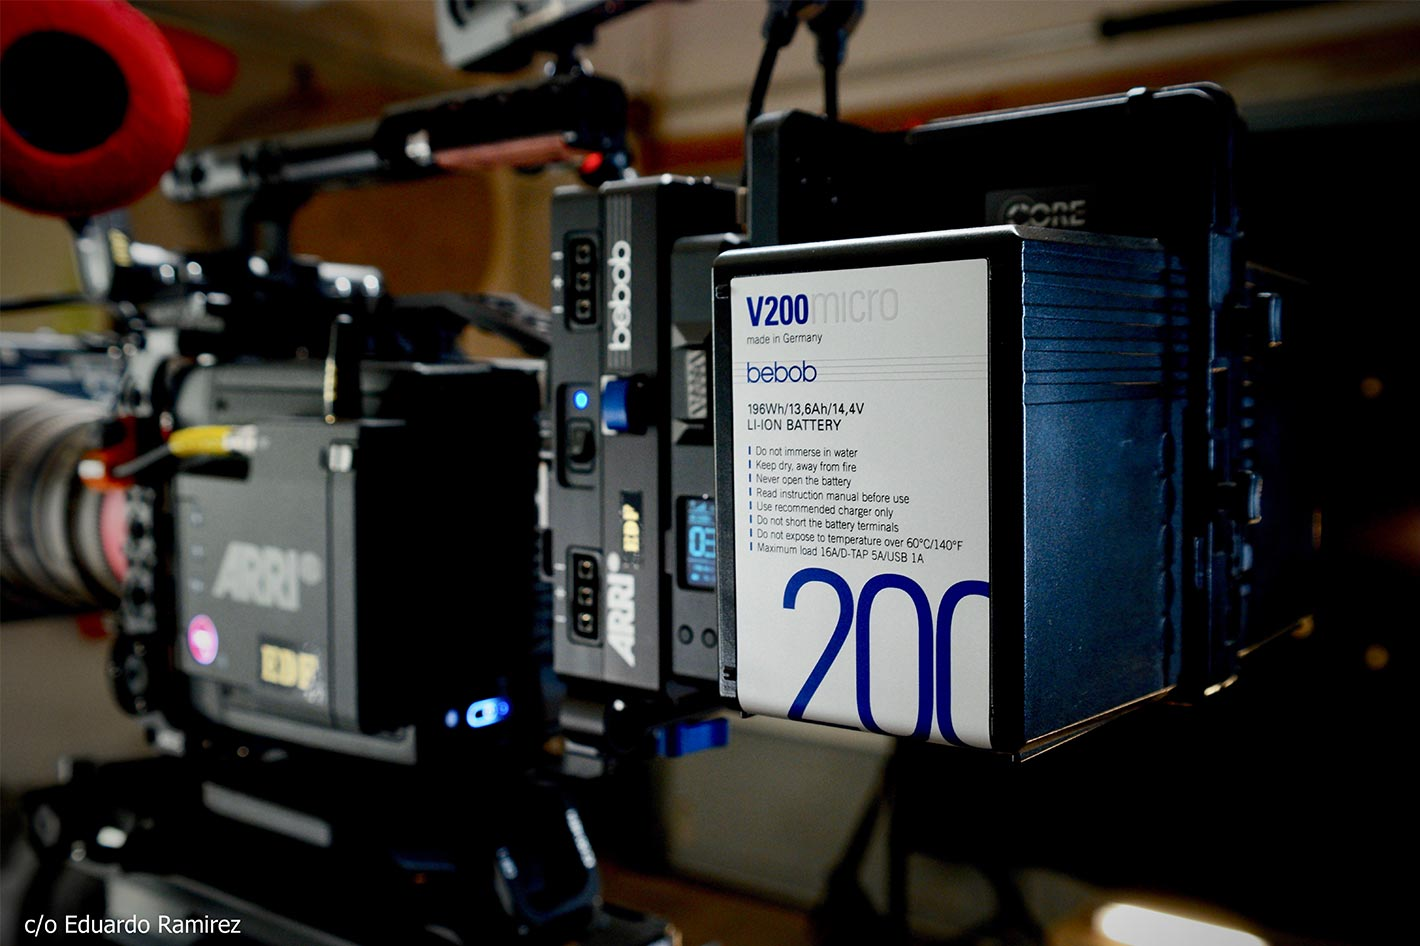 Micro monsters: new 200 Wh battery packs from bebob by Jose Antunes - ProVideo Coalition